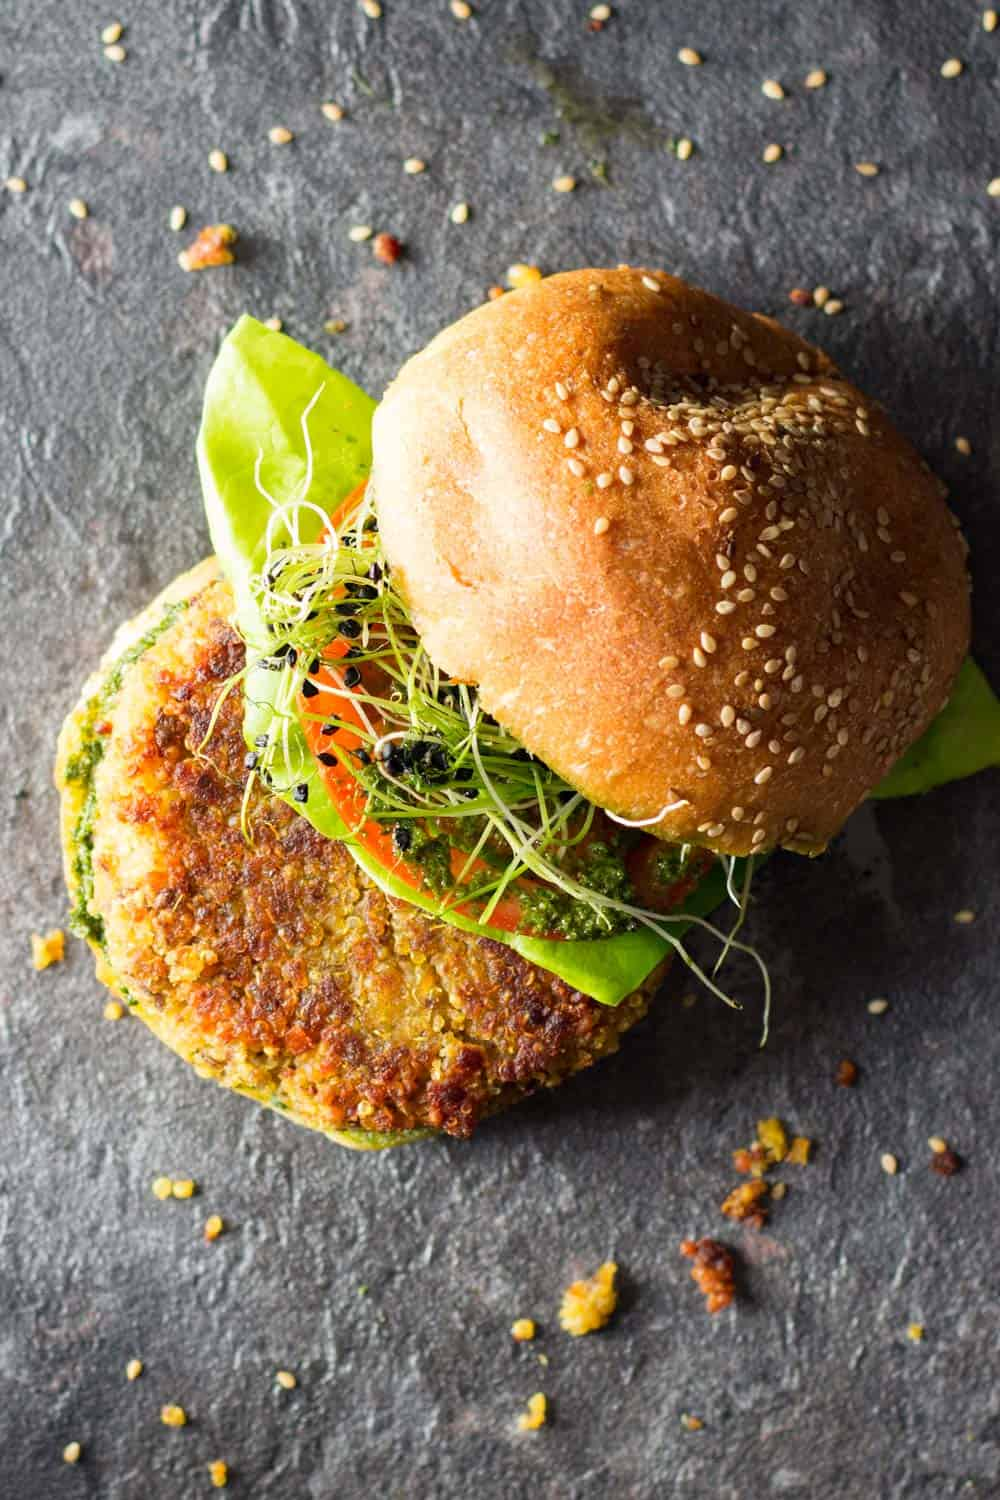 Top view of quinoa burger with top of bun set aside to show ingredients.